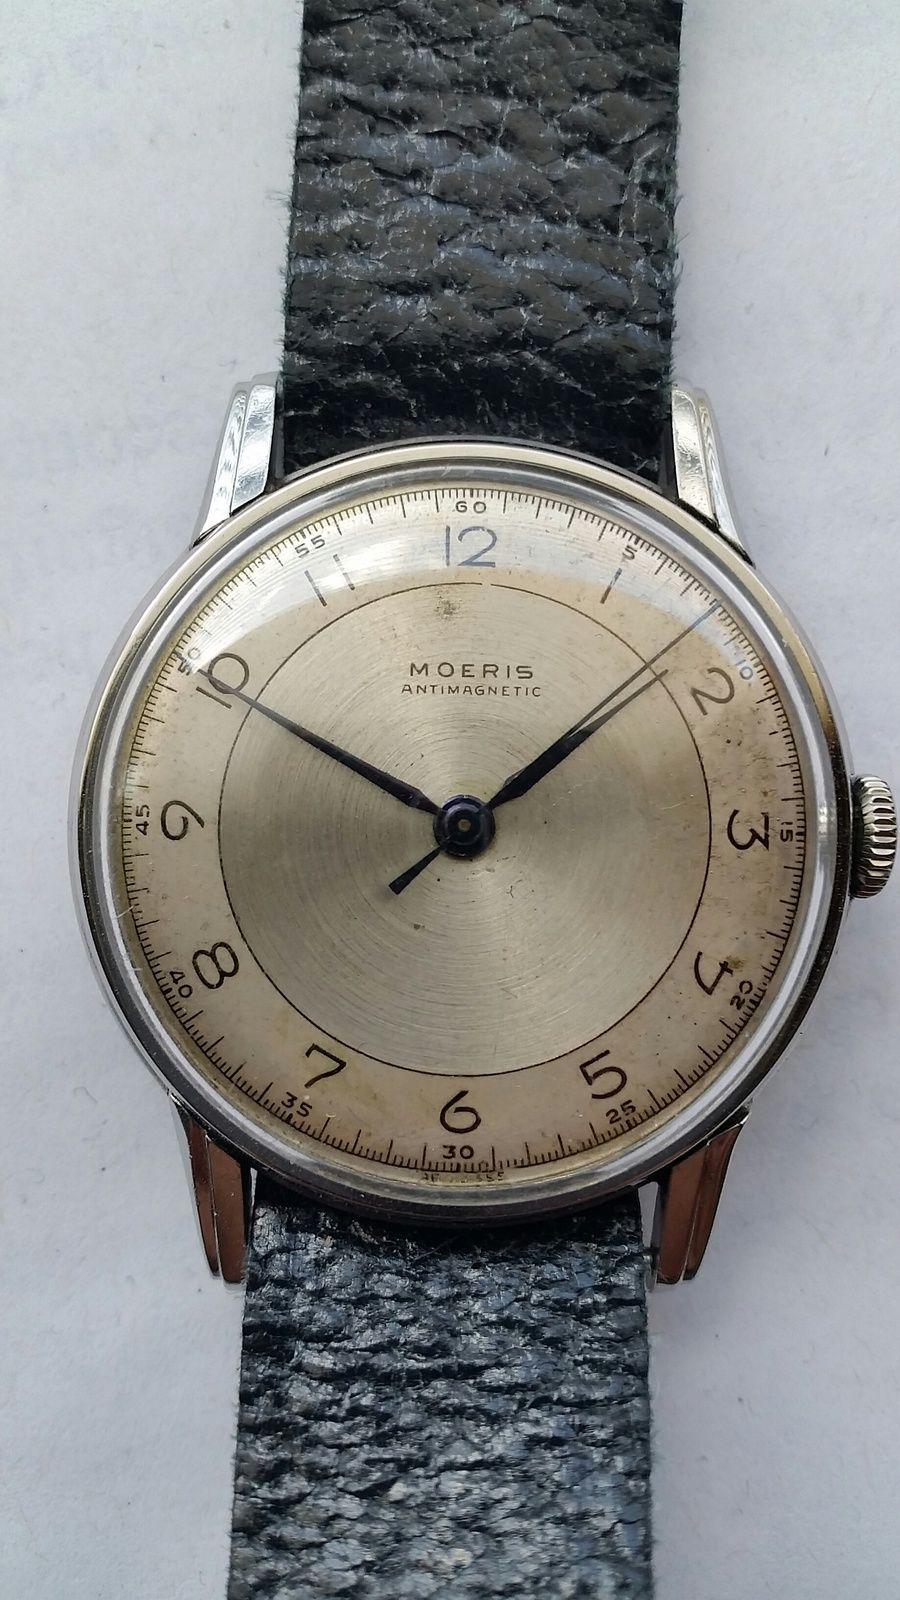 4761a3b2cac3b2 Blita square gents watch . Vintage 1950 s . Blita collectors watch with  unknown Swiss made caliber